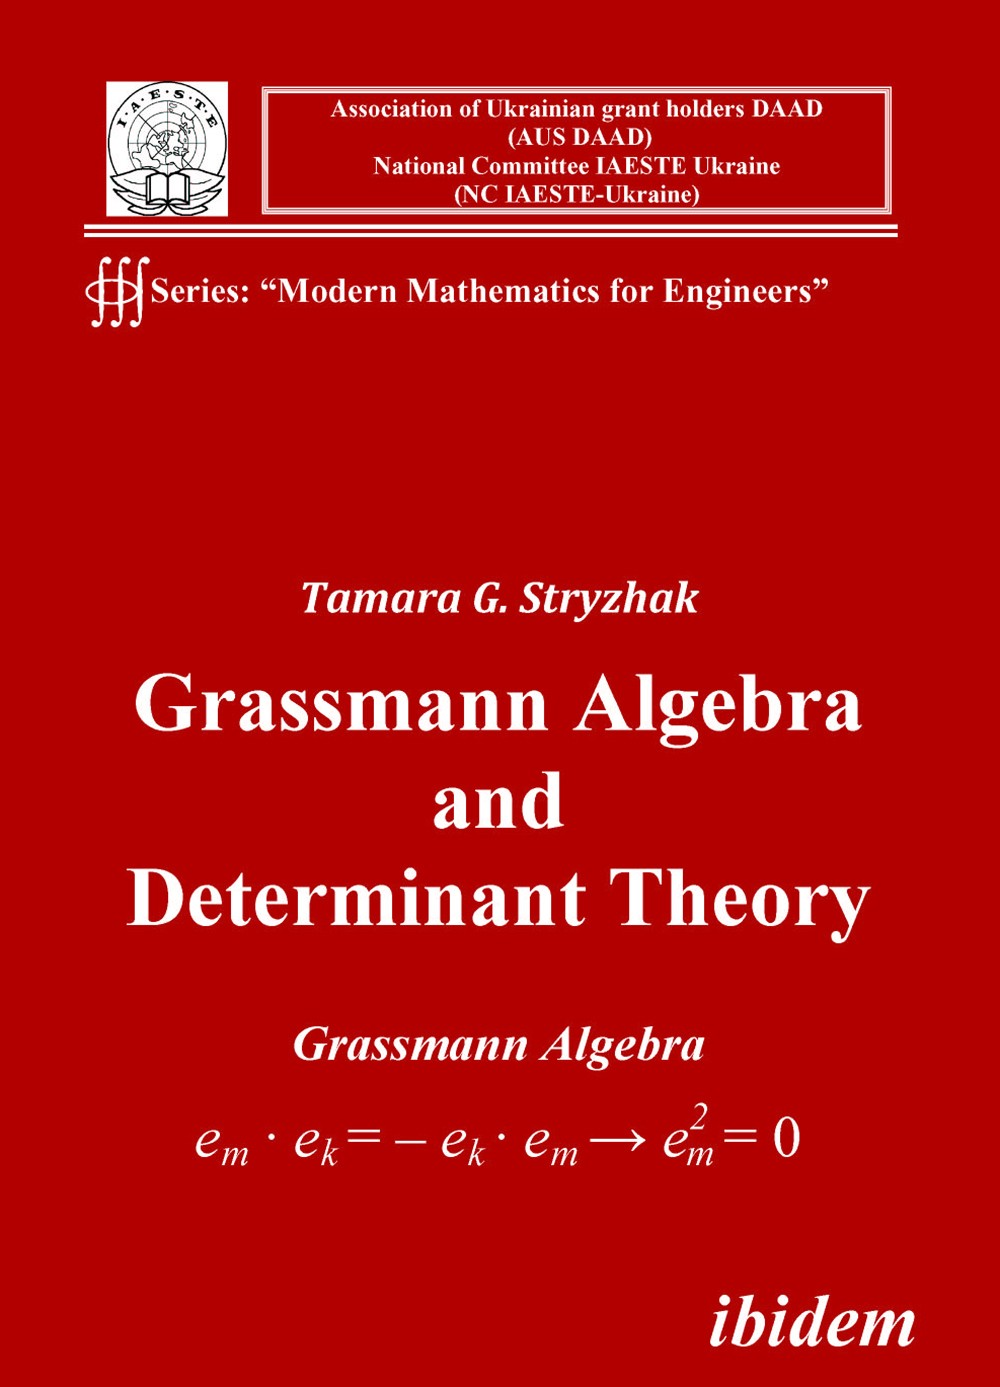 Grassmann Algebra and Determinant Theory